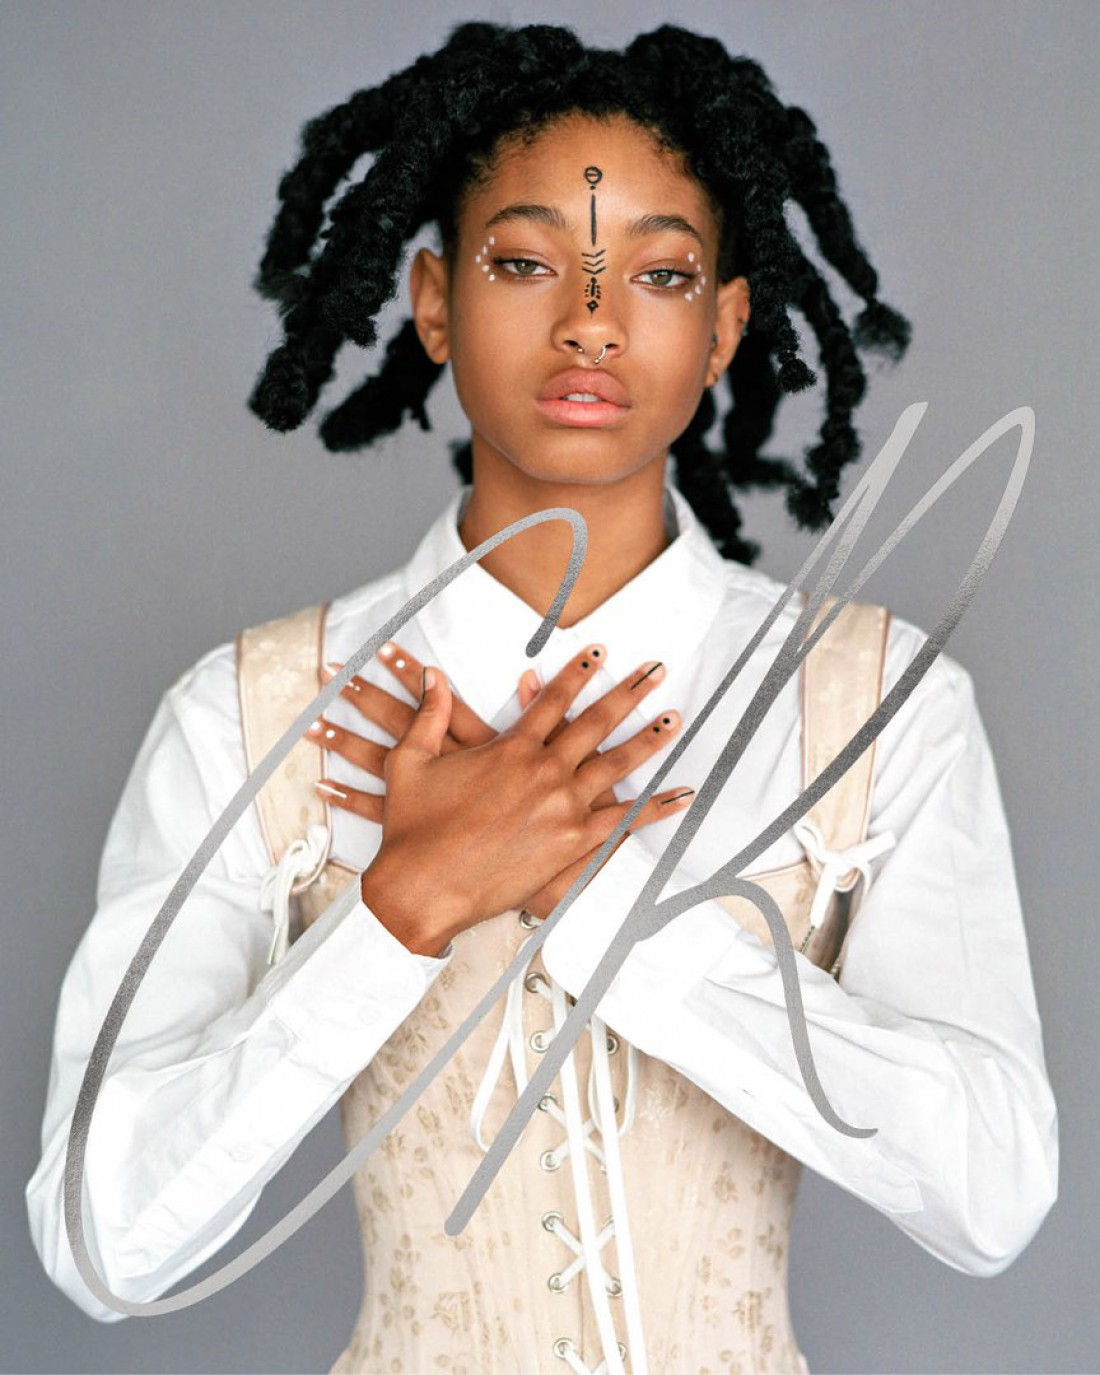 Уиллоу Смит в издании CR Fashion Book